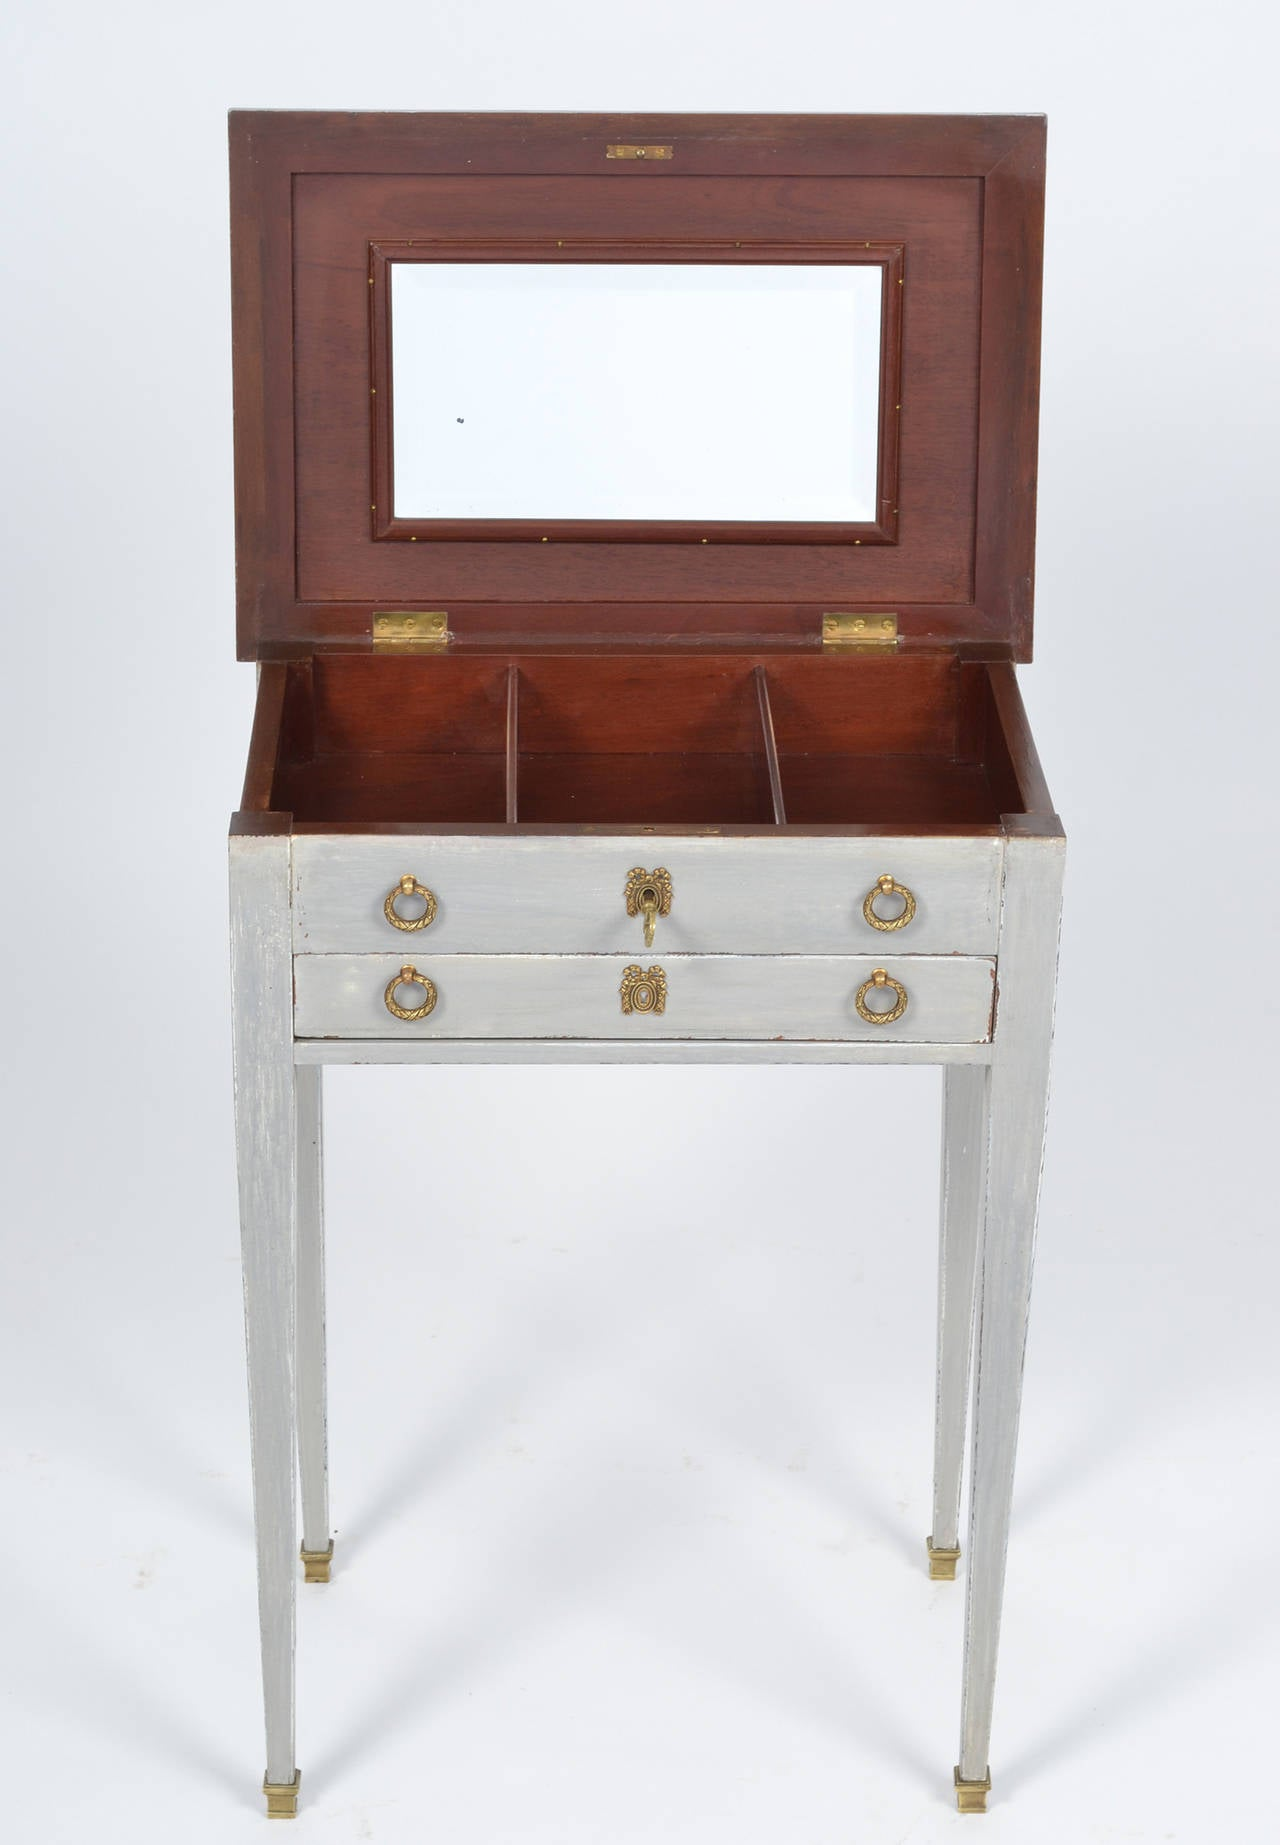 19th Century French Directoire Style Vanity Side Table For Sale